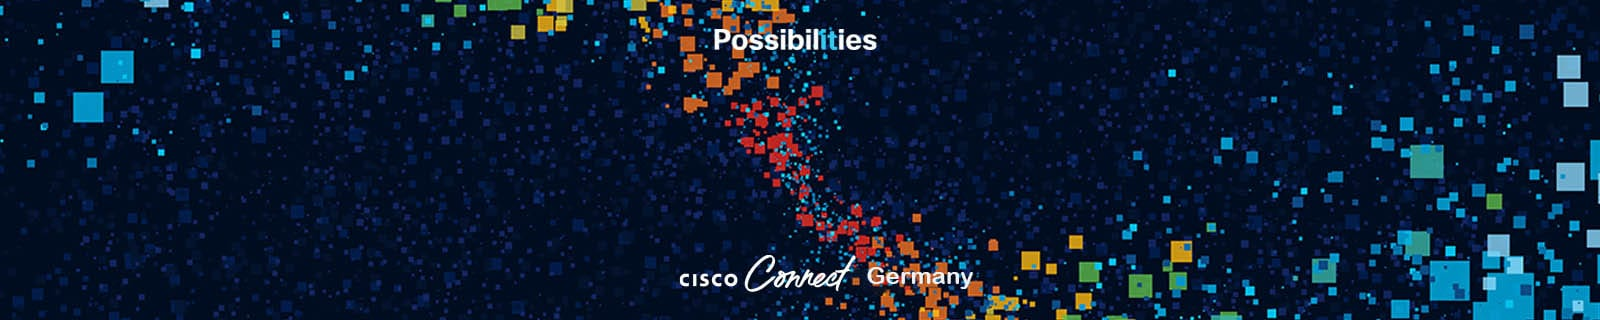 Cisco Connect Germany 2021